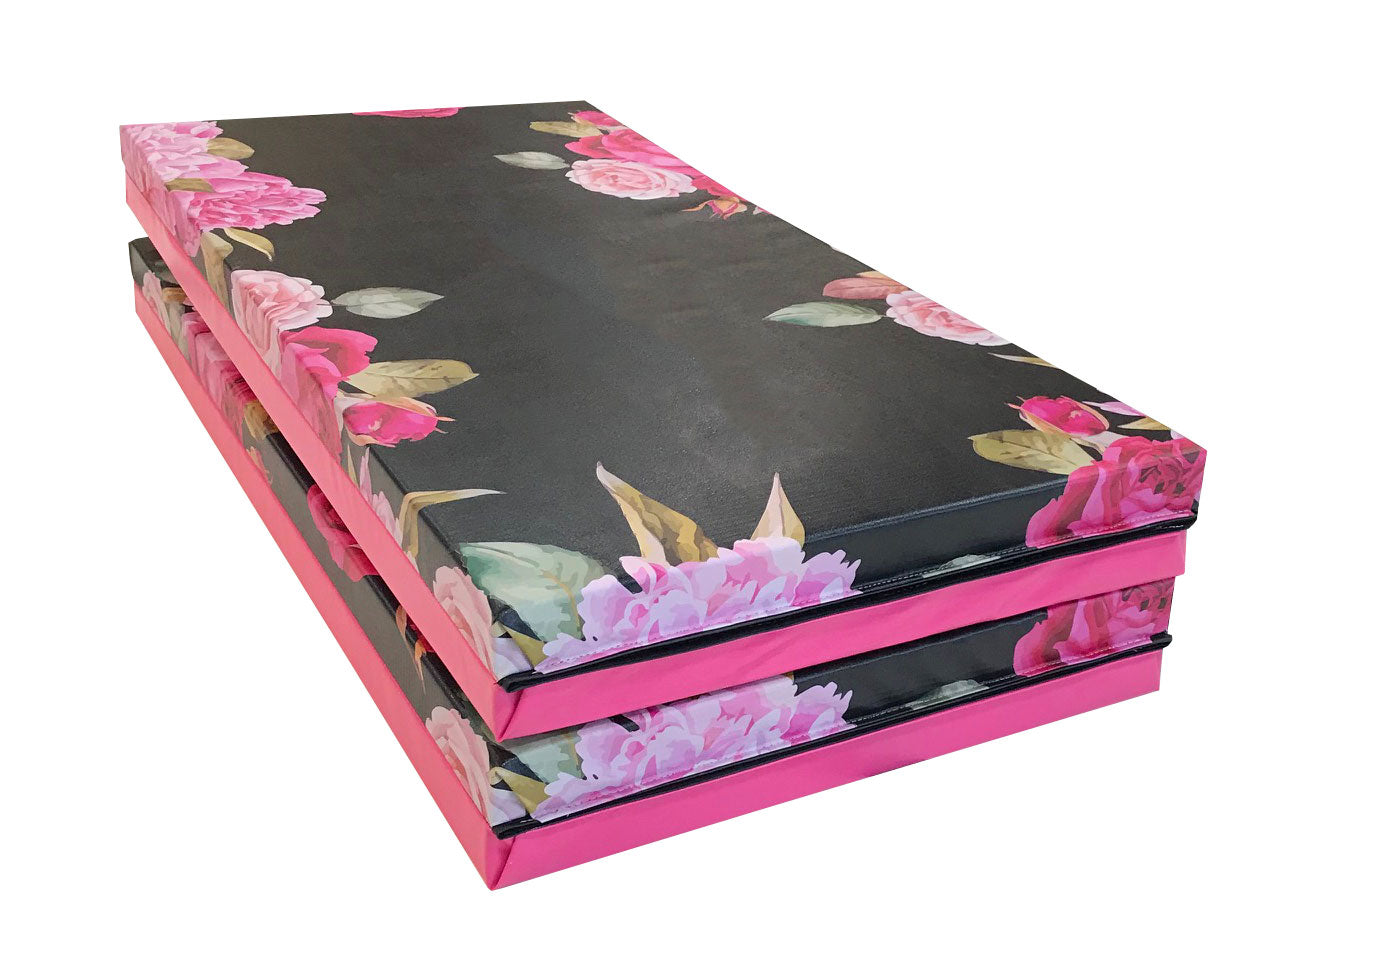 4 panel pink and black flower gymnastics mat